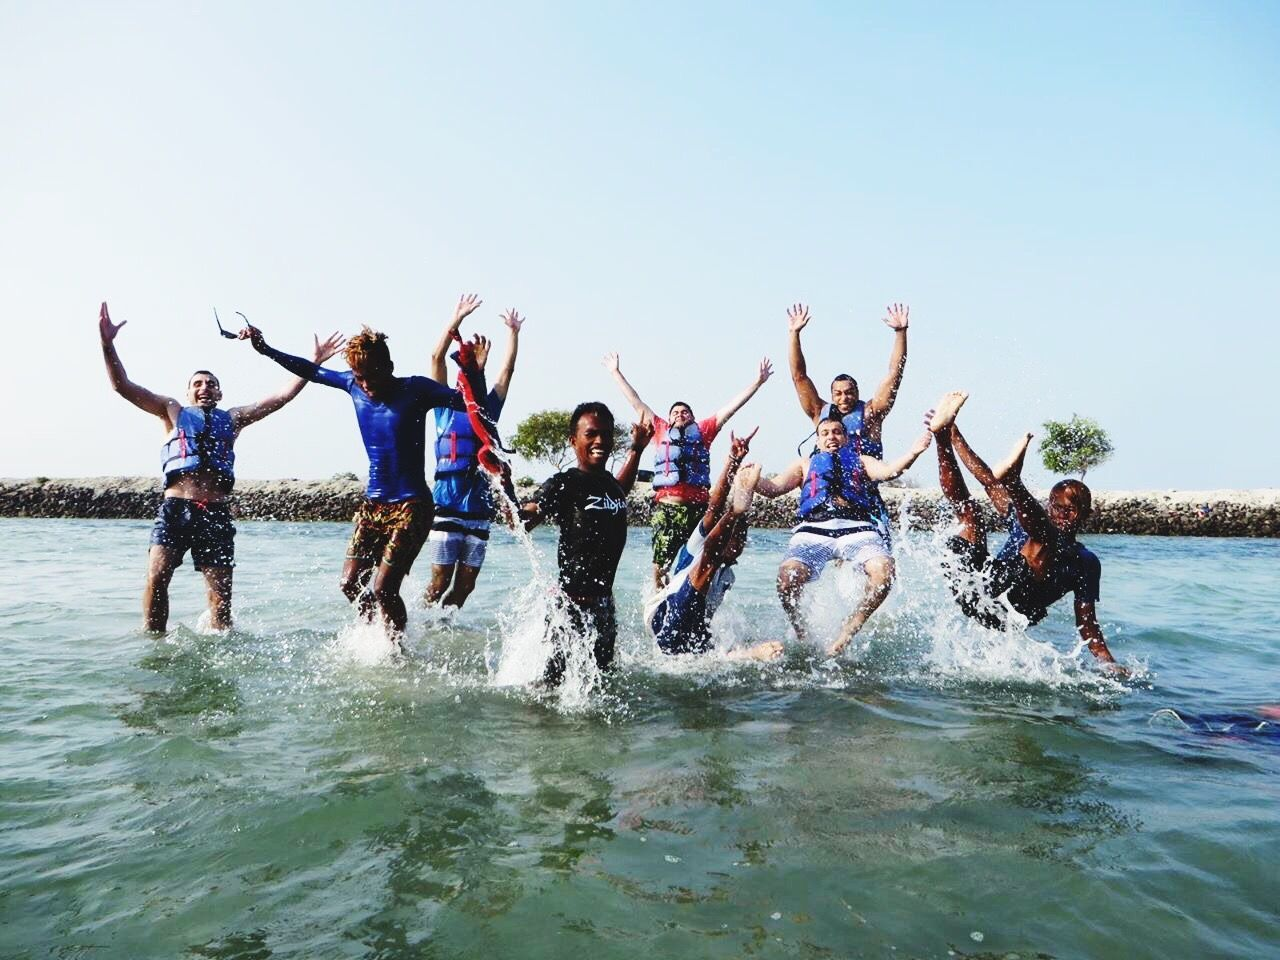 Friendship Fun Summer Togetherness Celebration Enjoyment Happiness Vacations Arms Raised Party - Social Event Limb Human Arm Cheerful Young Adult Human Limb Young Men Carefree Human Body Part Vitality Young Women